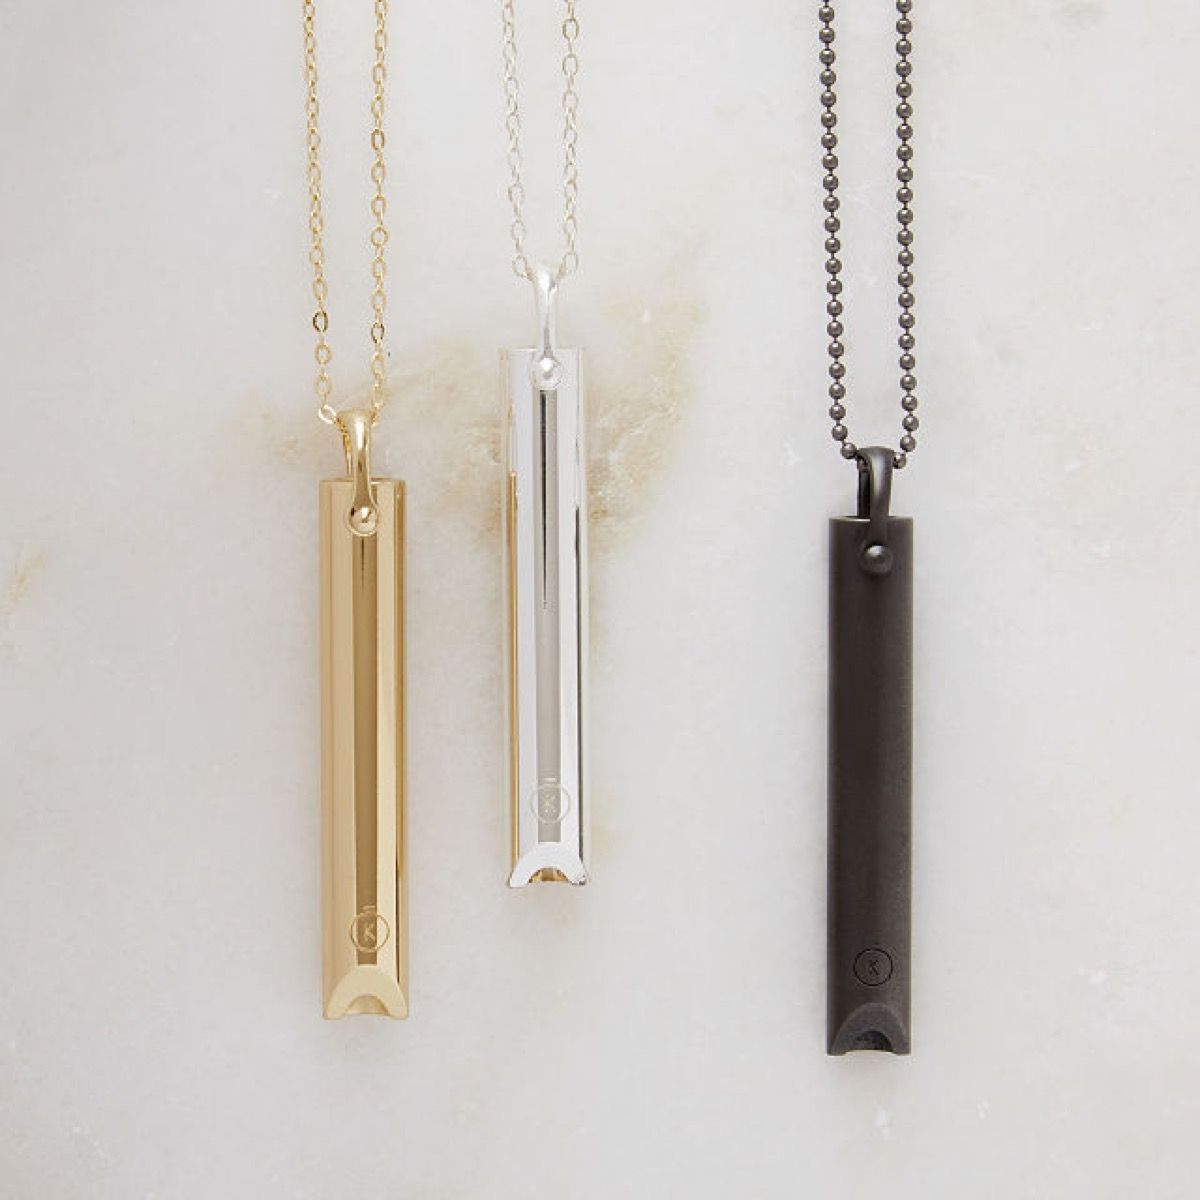 metal necklaces, relaxation gifts